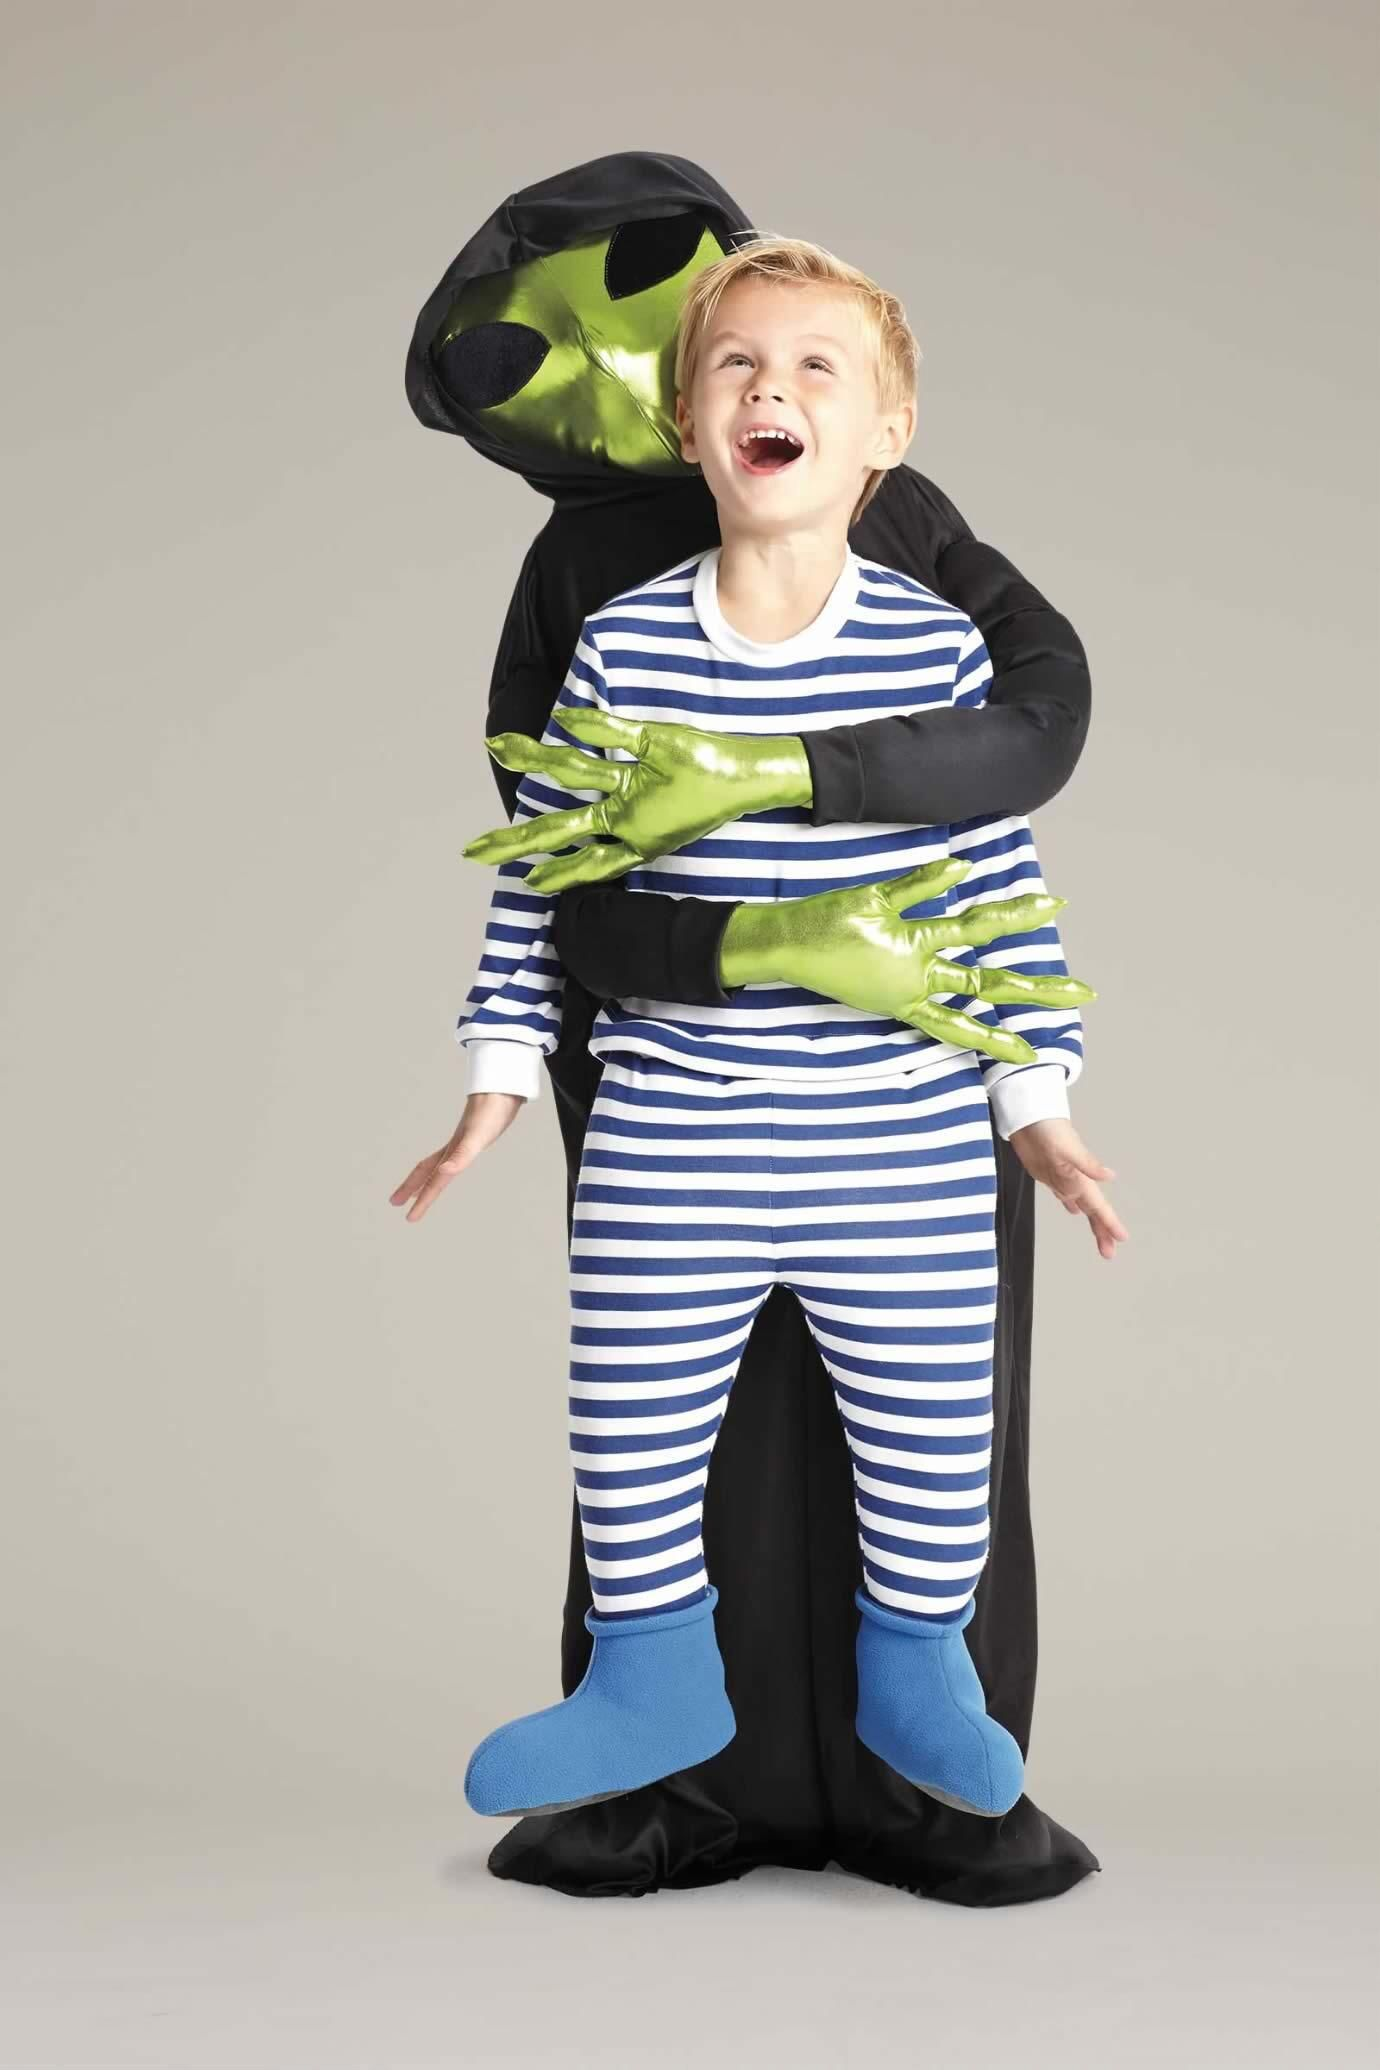 Alien Abduction Costume For Kids | Chasing Fireflies  sc 1 st  Pinterest & Alien Abduction Costume For Kids | Alien abduction Costumes and ...